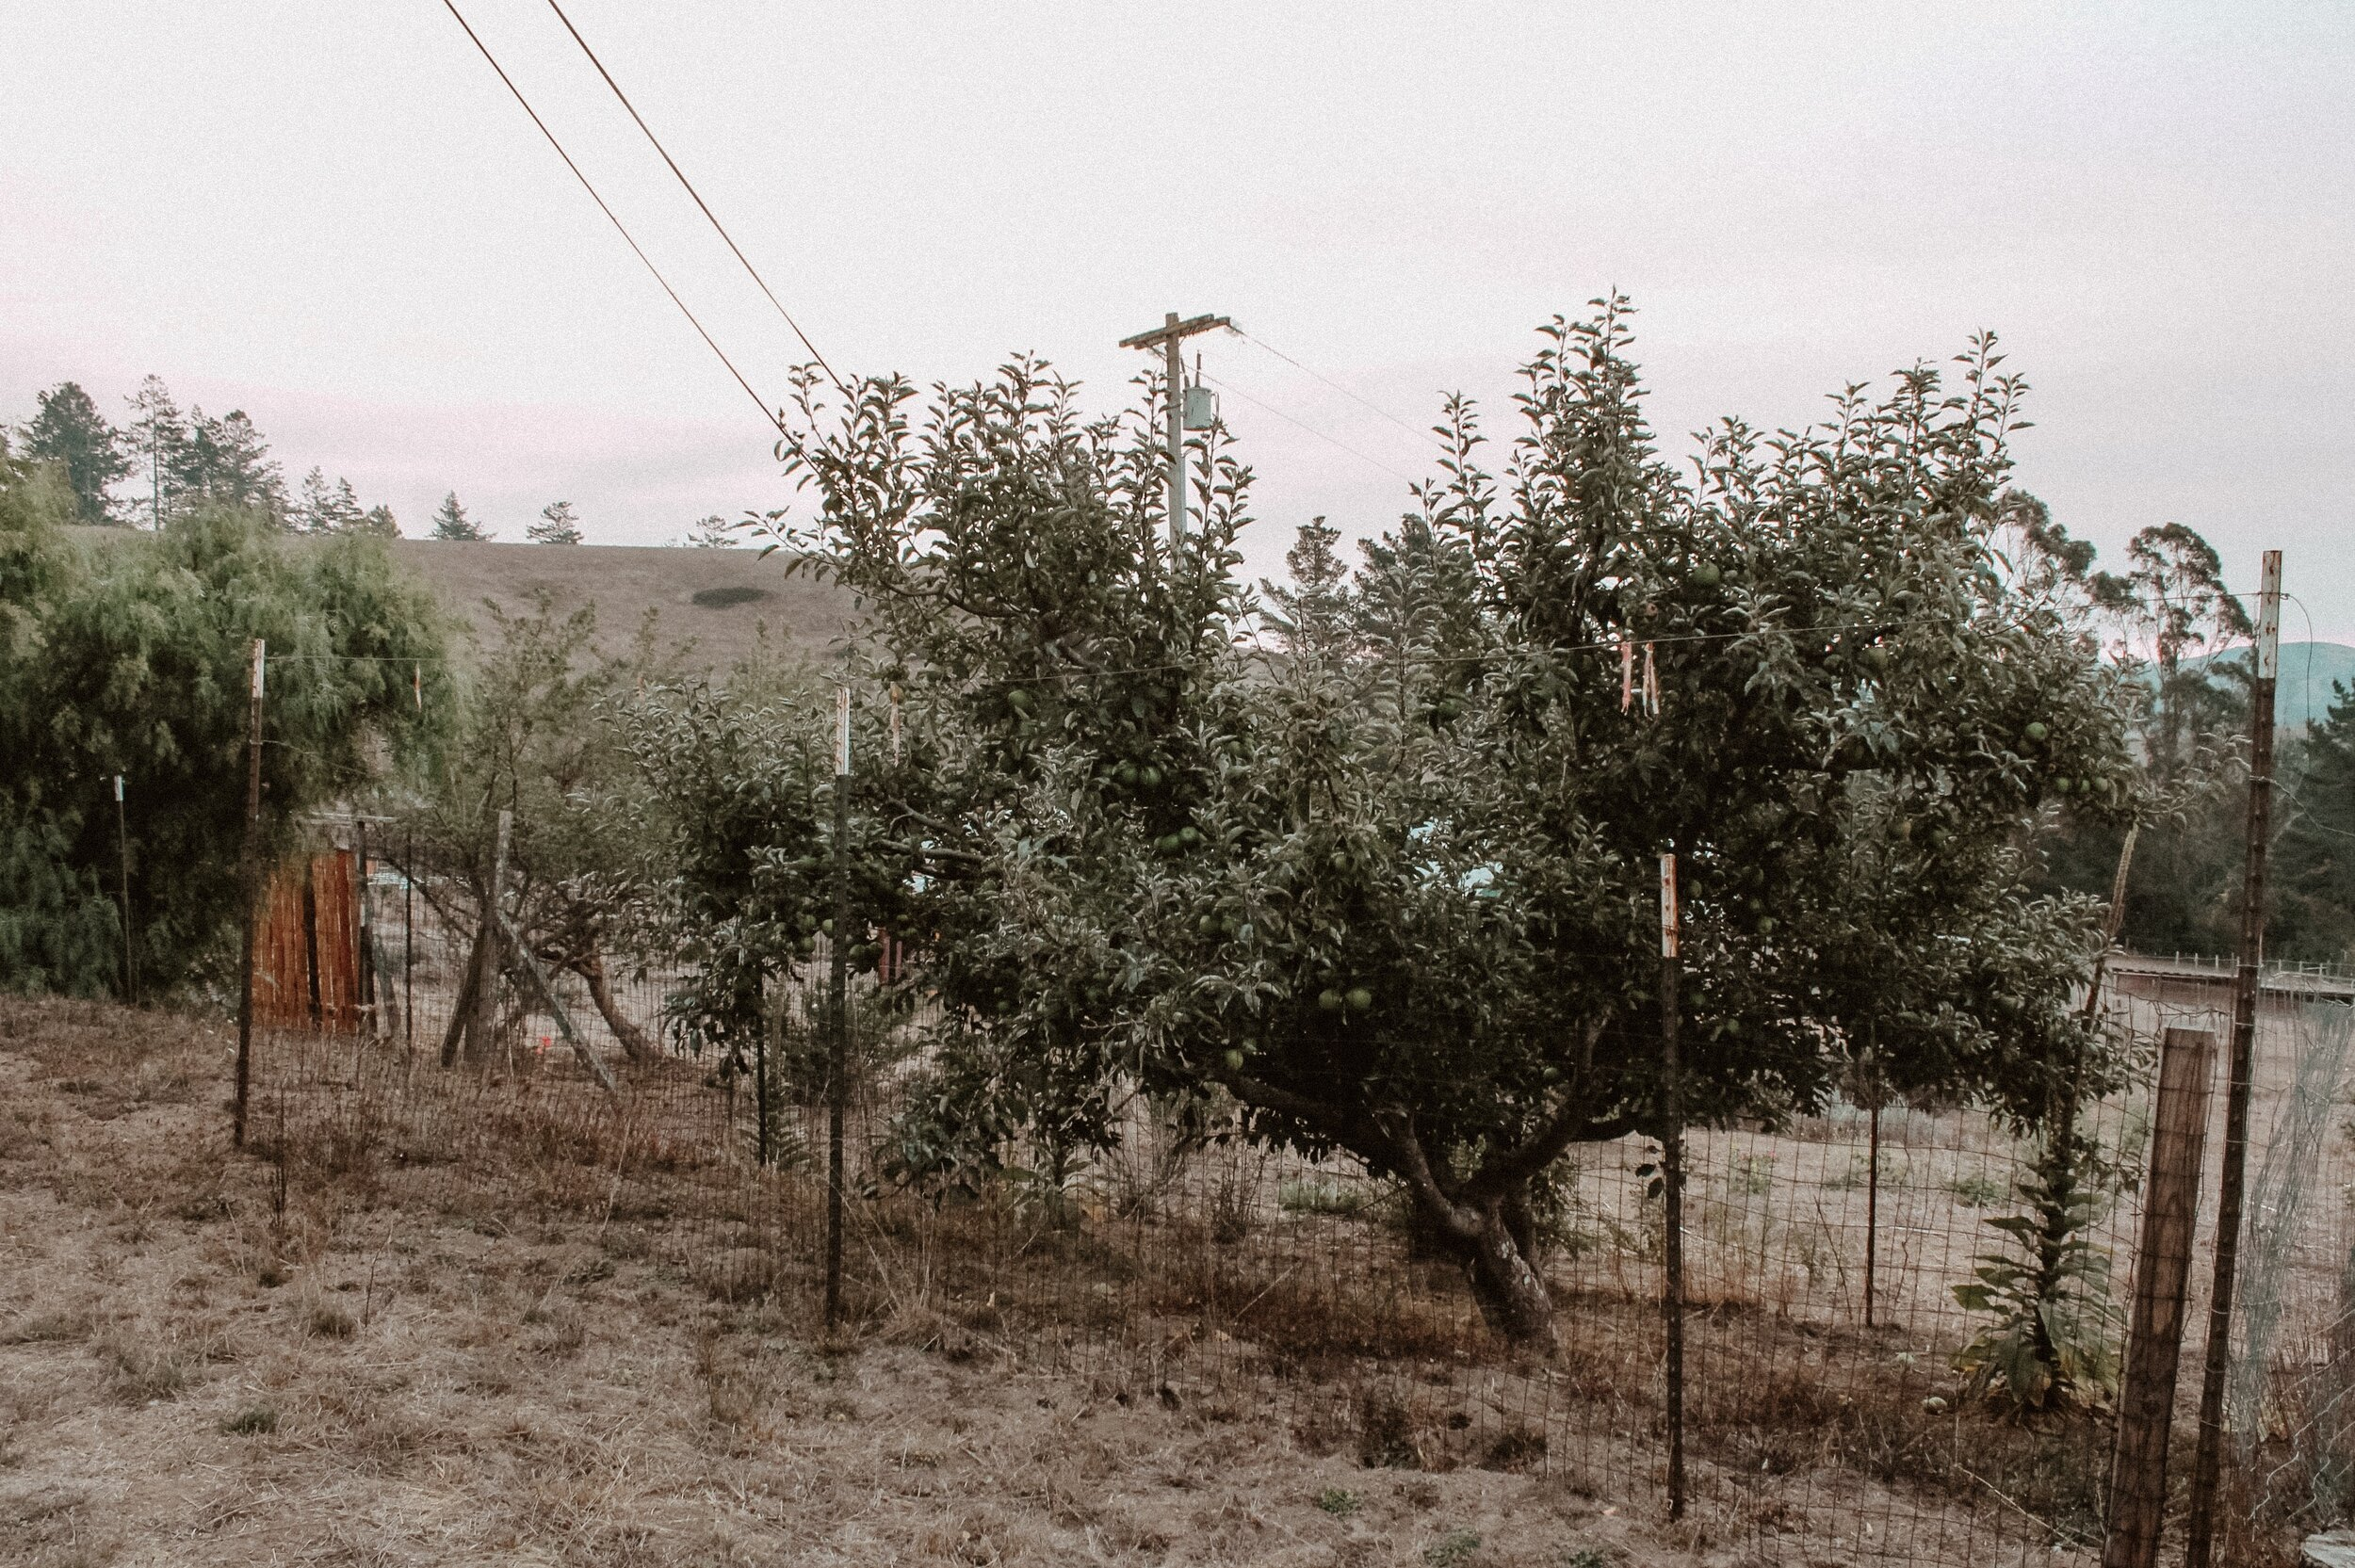 Farm Life and The Apple Tree Trimer1